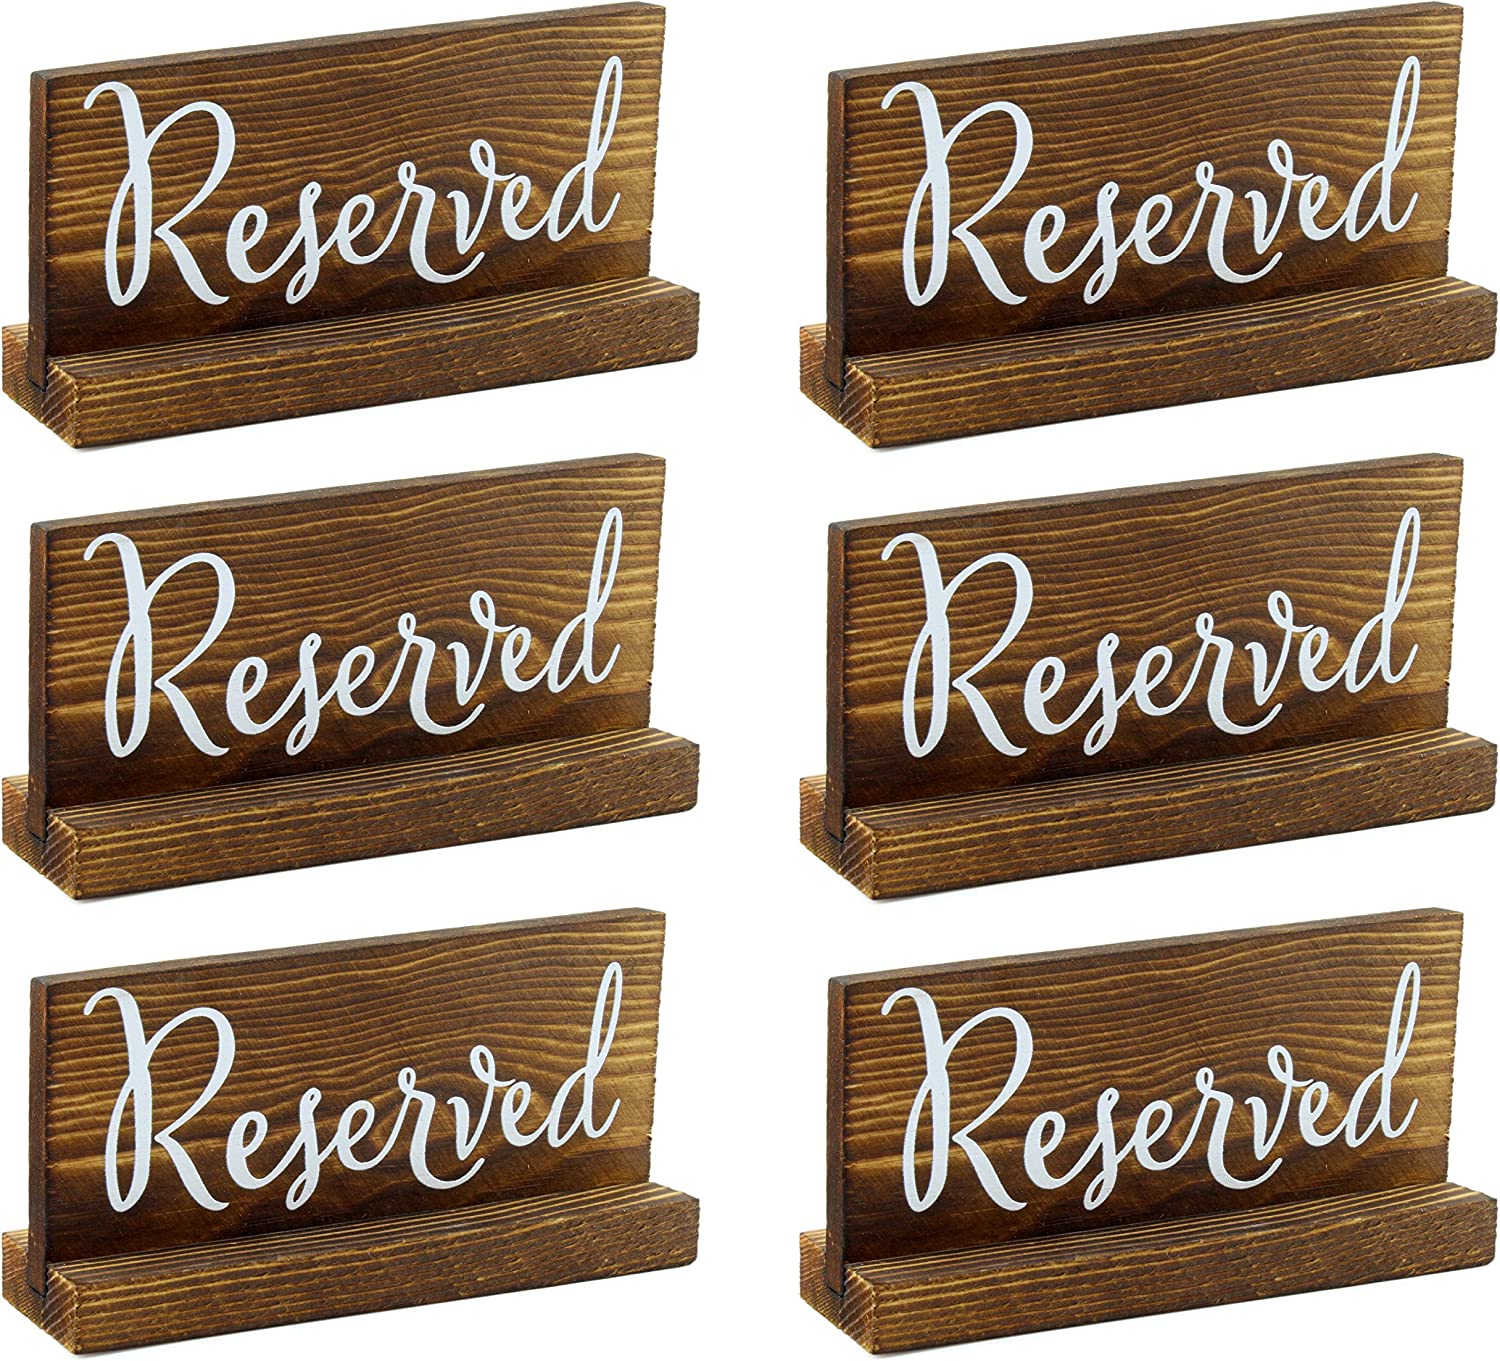 Darware Wooden Reserved Signs for Tables (6-Pack); Rustic Real Table Signs with Sign Holders for Weddings, Special Events, and Restaurant Use